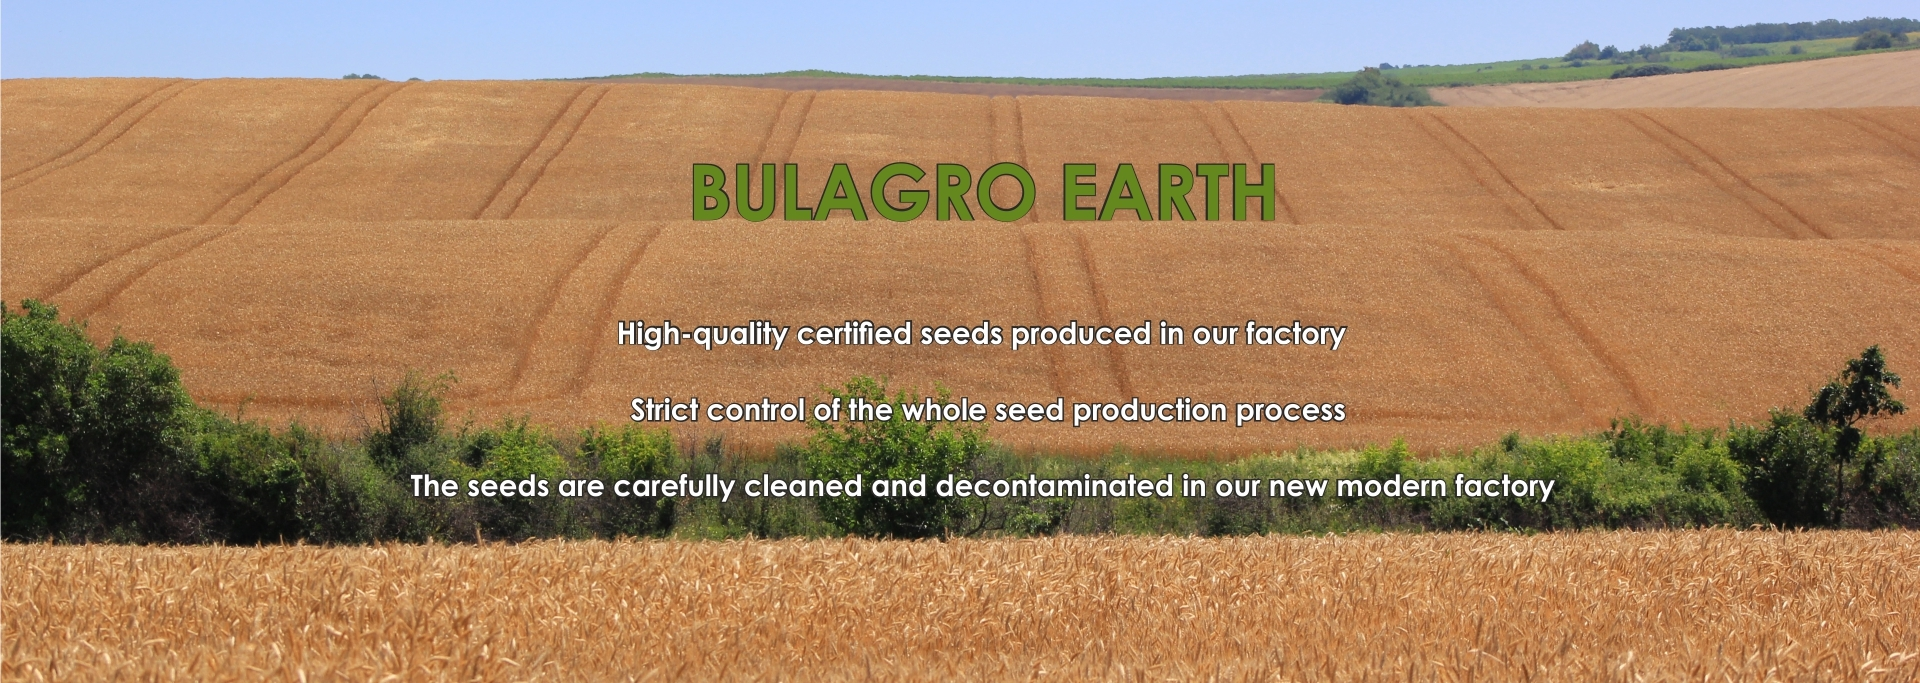 Bulagro Earth Eng